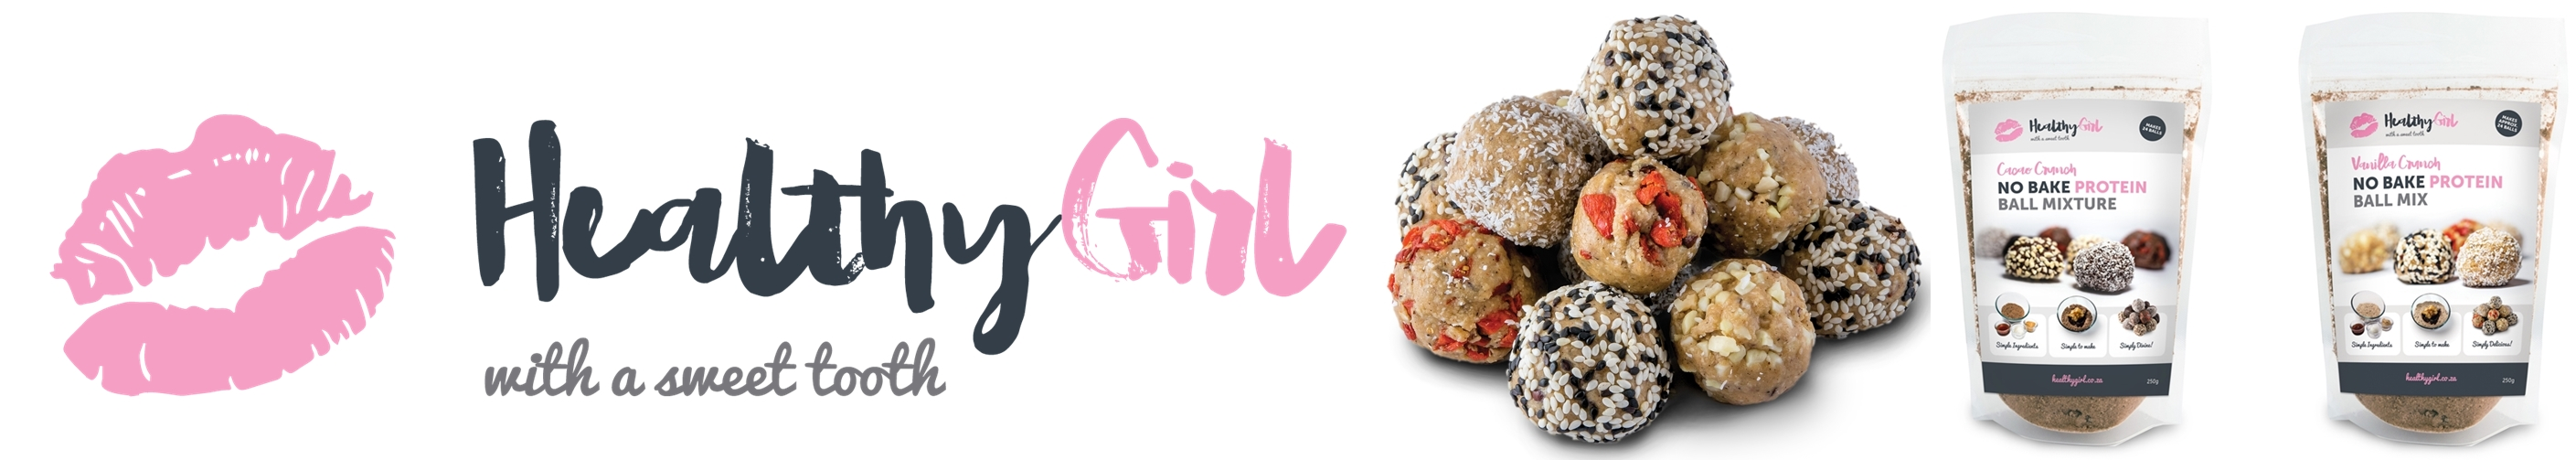 healthy girl brand page logo